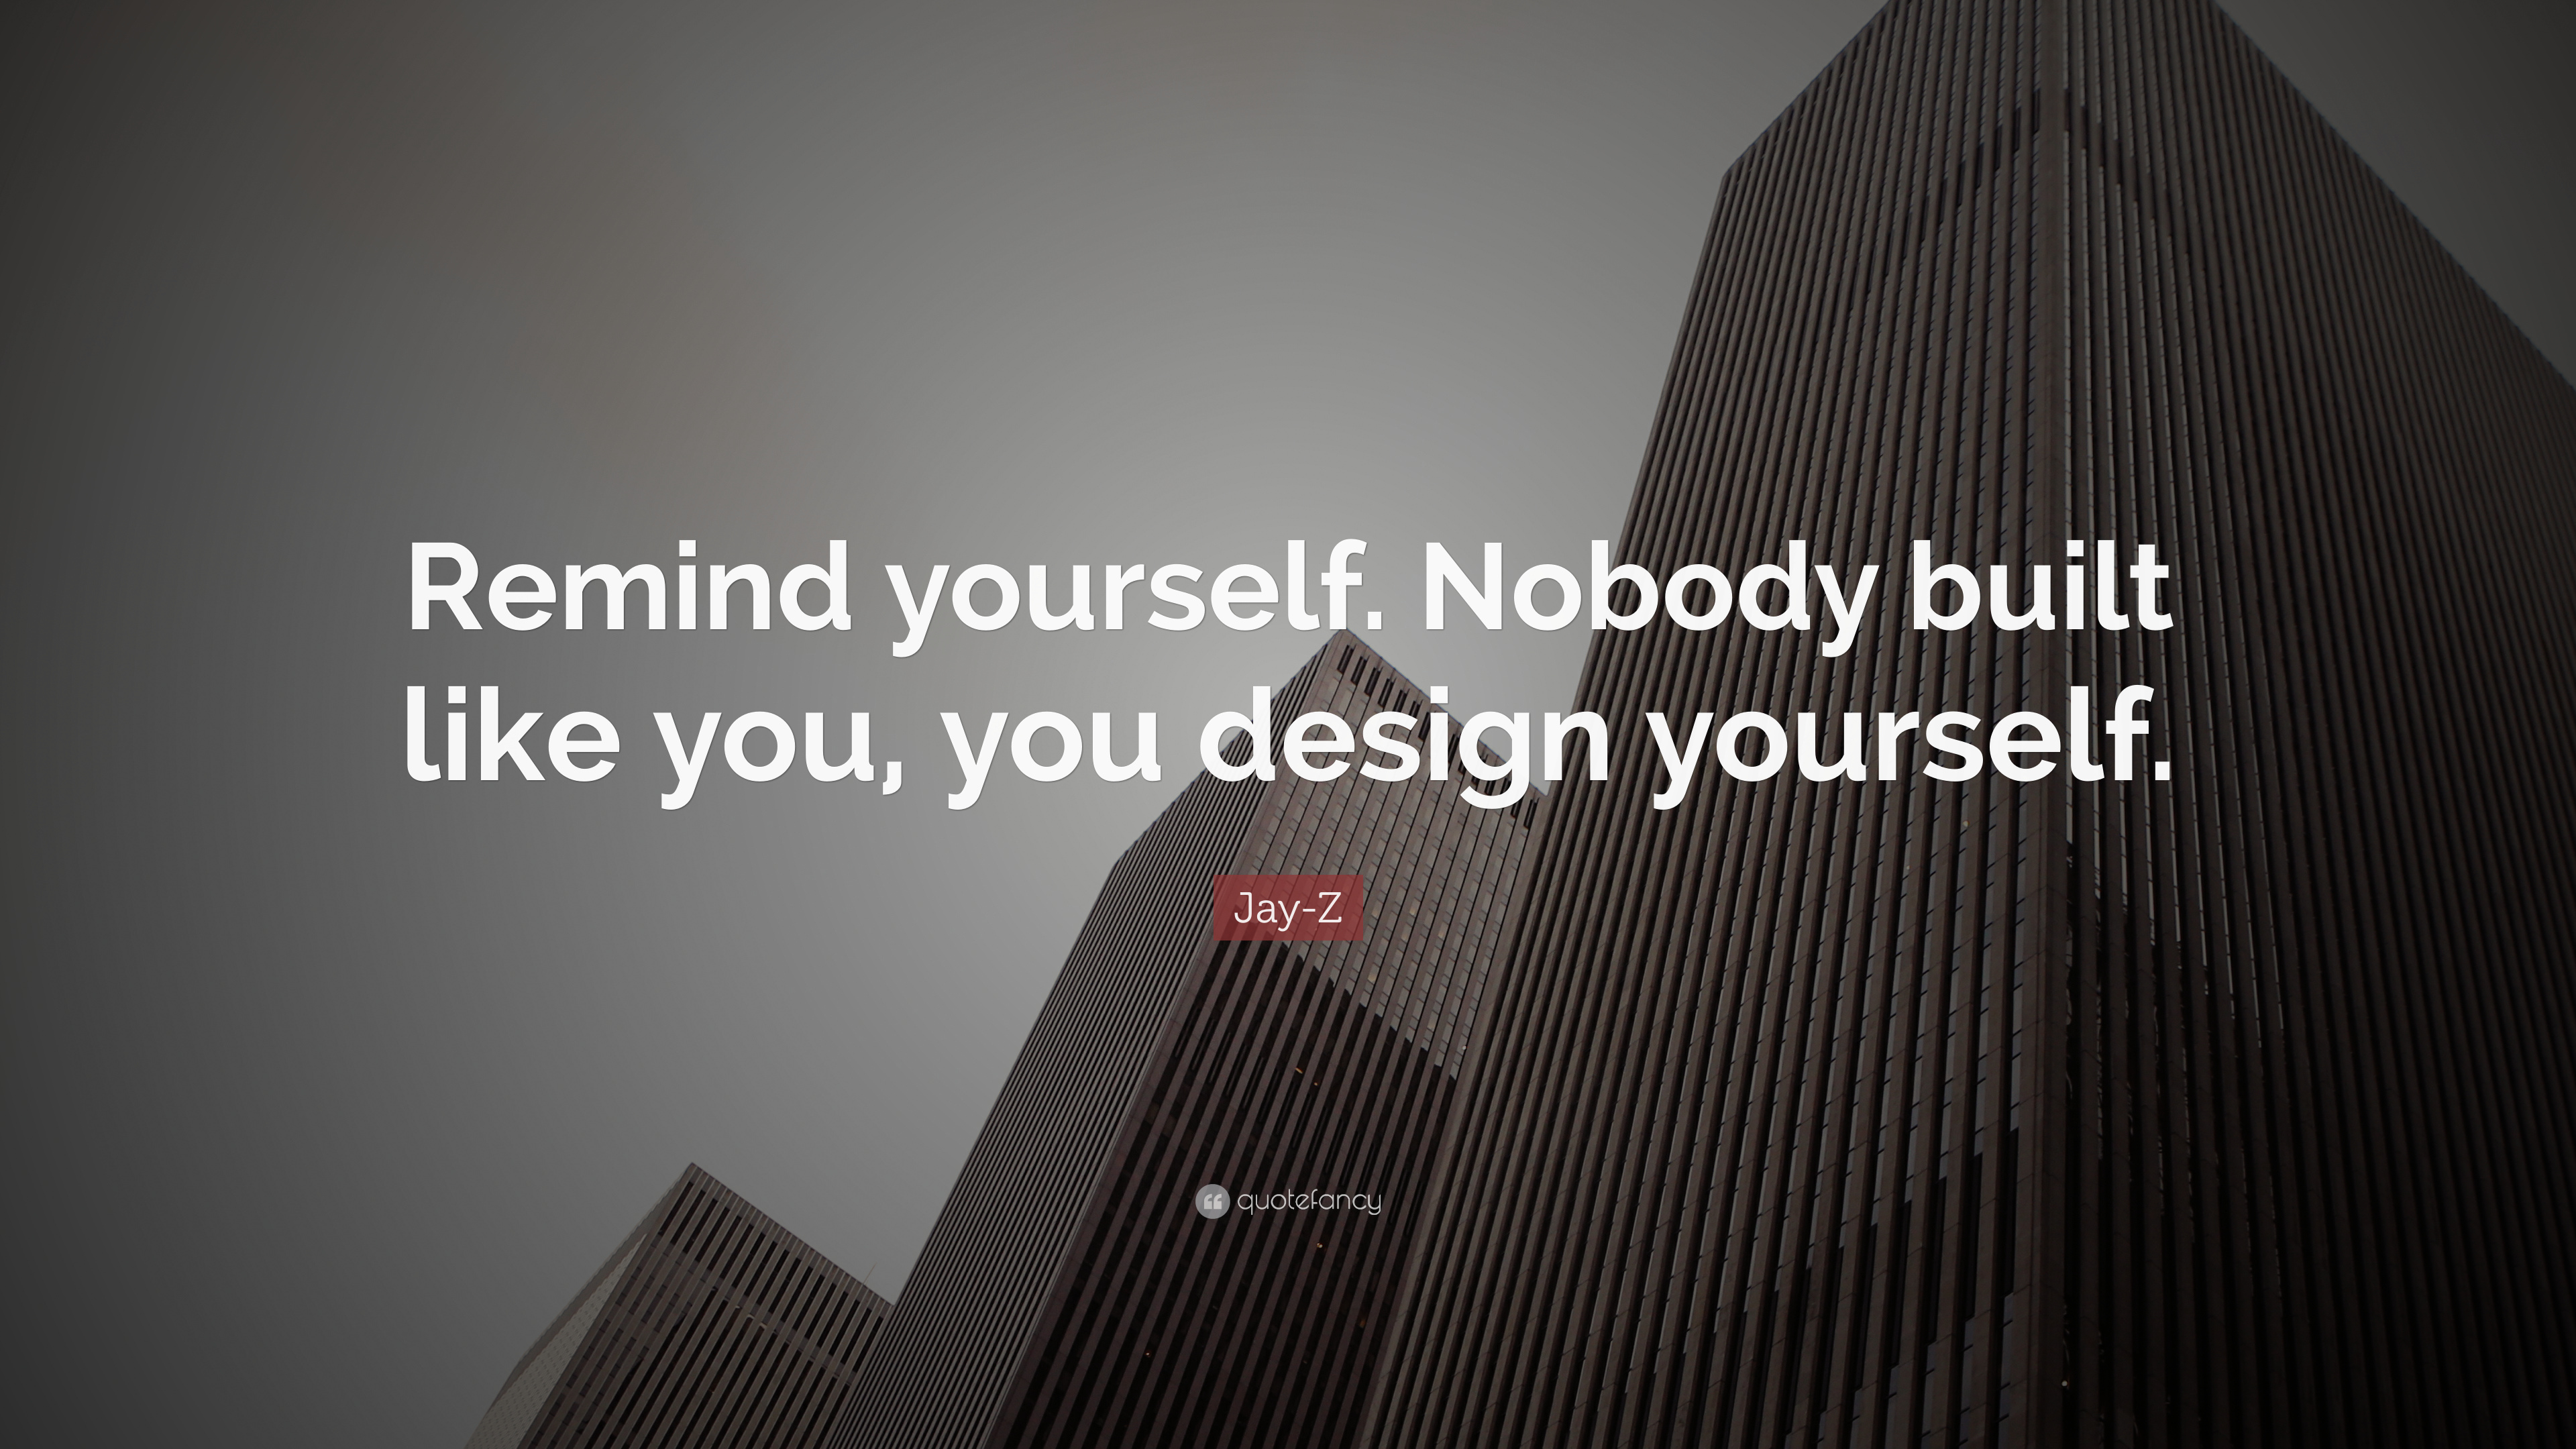 Jay Z Quote Remind Yourself Nobody Built Like You You Design